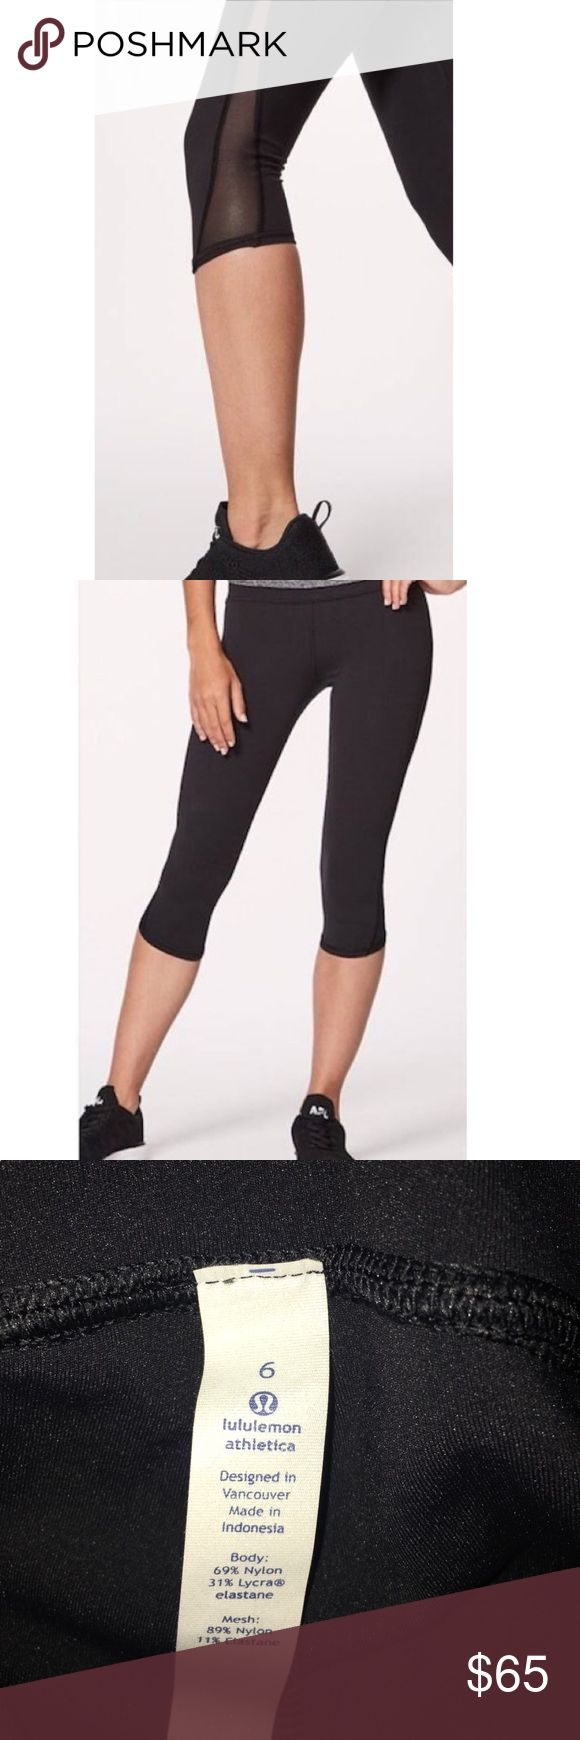 Lululemon crop mesh leggings Black cute lululemon leggings brand new! Price is cut off of tag because I received these as a gift. Nothing wrong with them they just did not fit. Also have these for sale size 2! lululemon athletica Pants Leggings